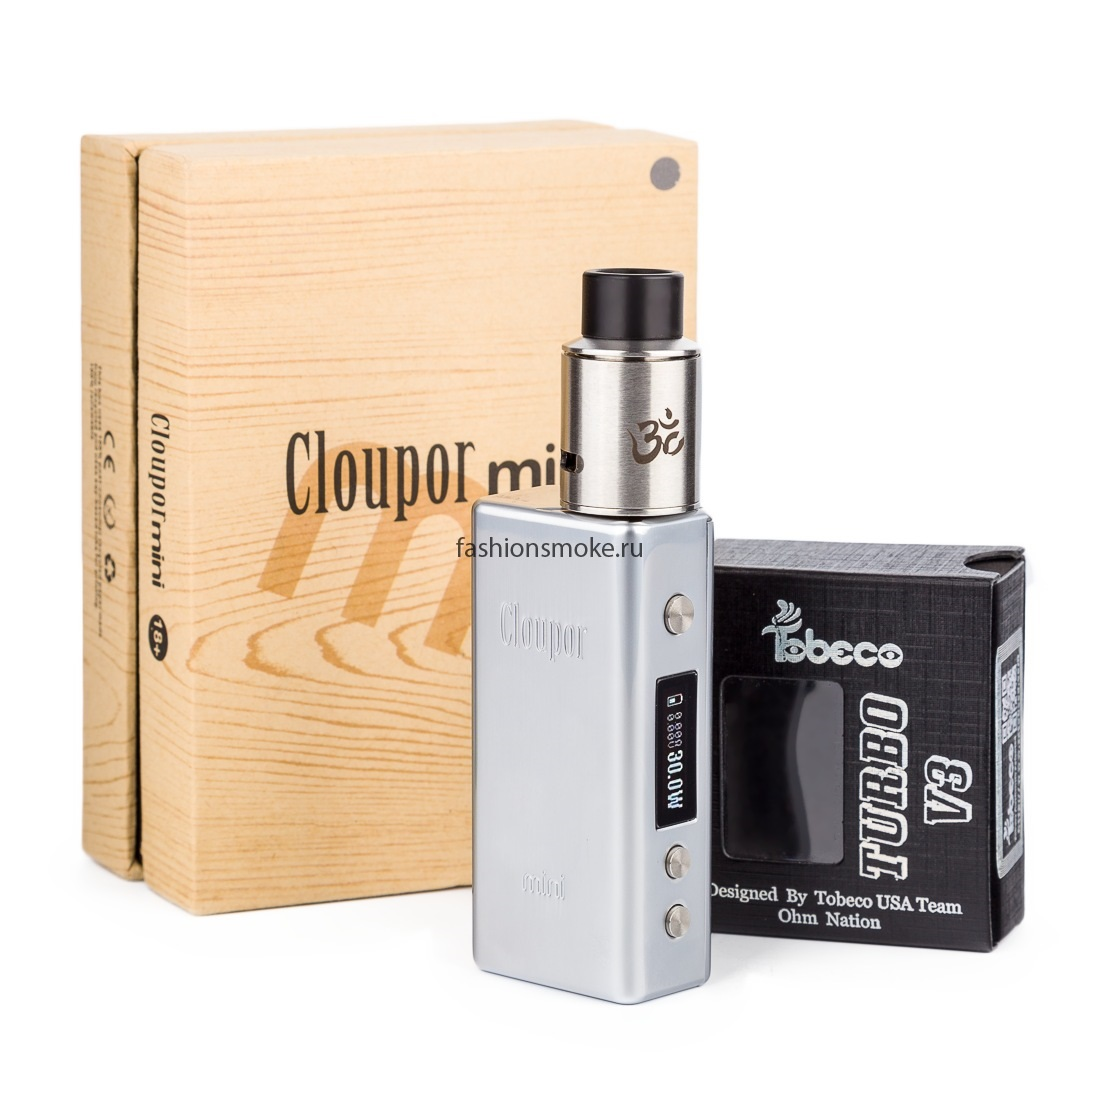 Бокс мод Smok Cloupor mini 30 W + дрипка Tobeco Turbo V3